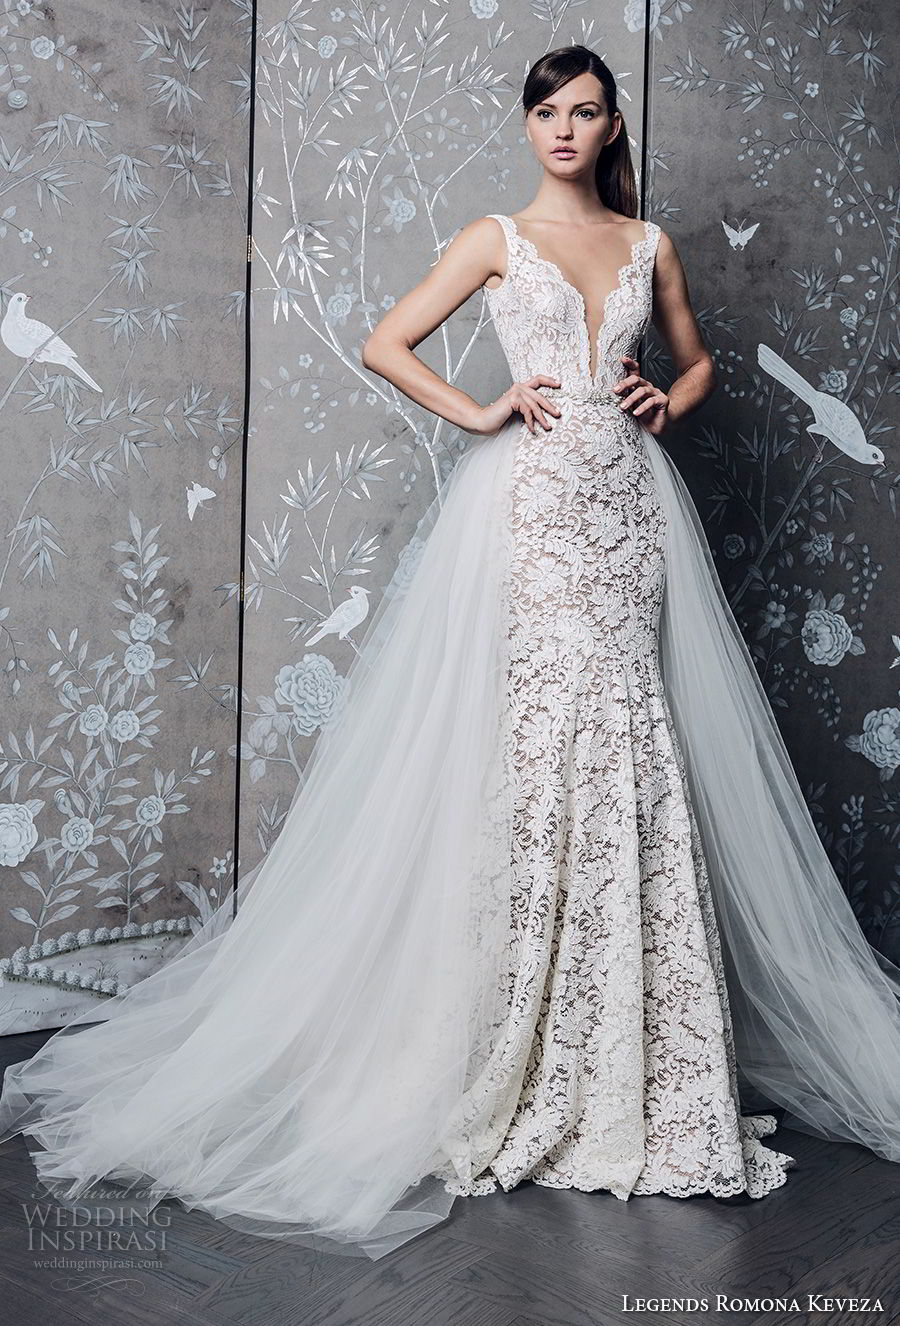 Legends romona keveza fall 2018 wedding dresses wedding for Dresses for a fall wedding